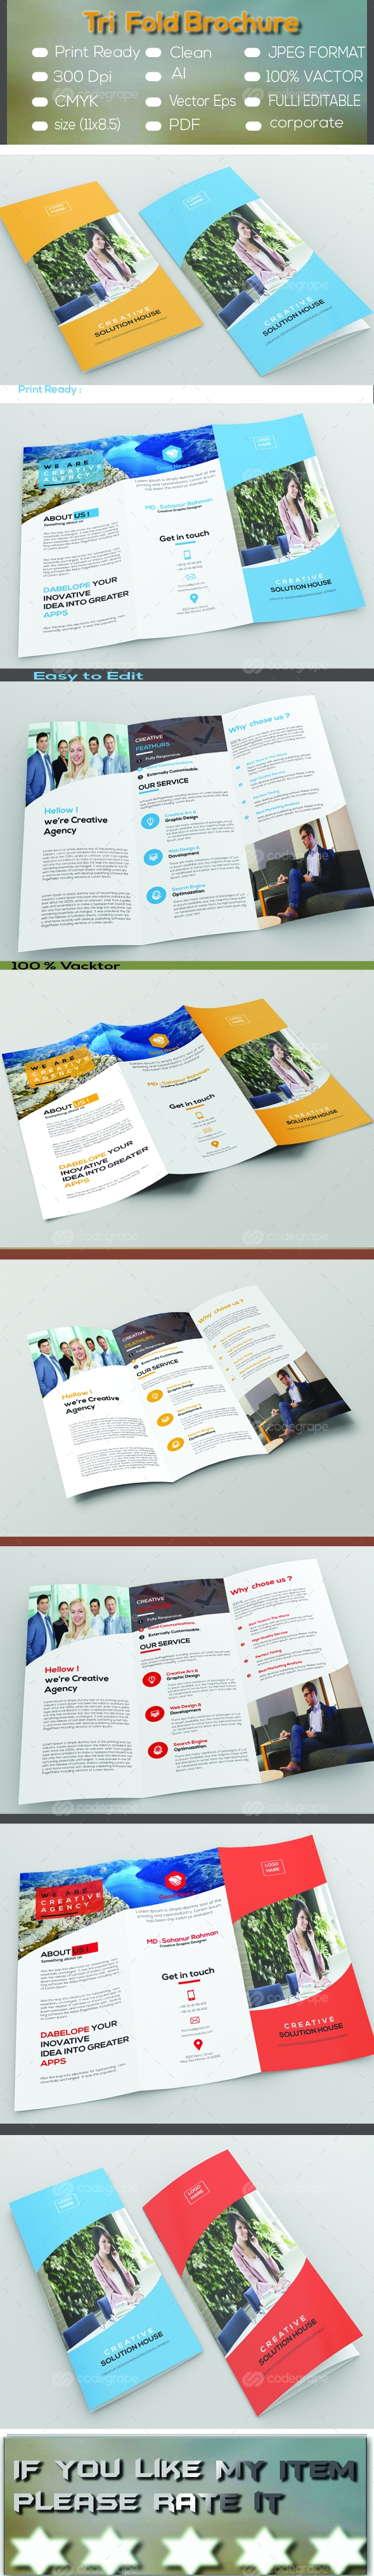 Trifold Brochure on @codegrape. More Info: http://www.codegrape.com/item/trifold-brochure/8533